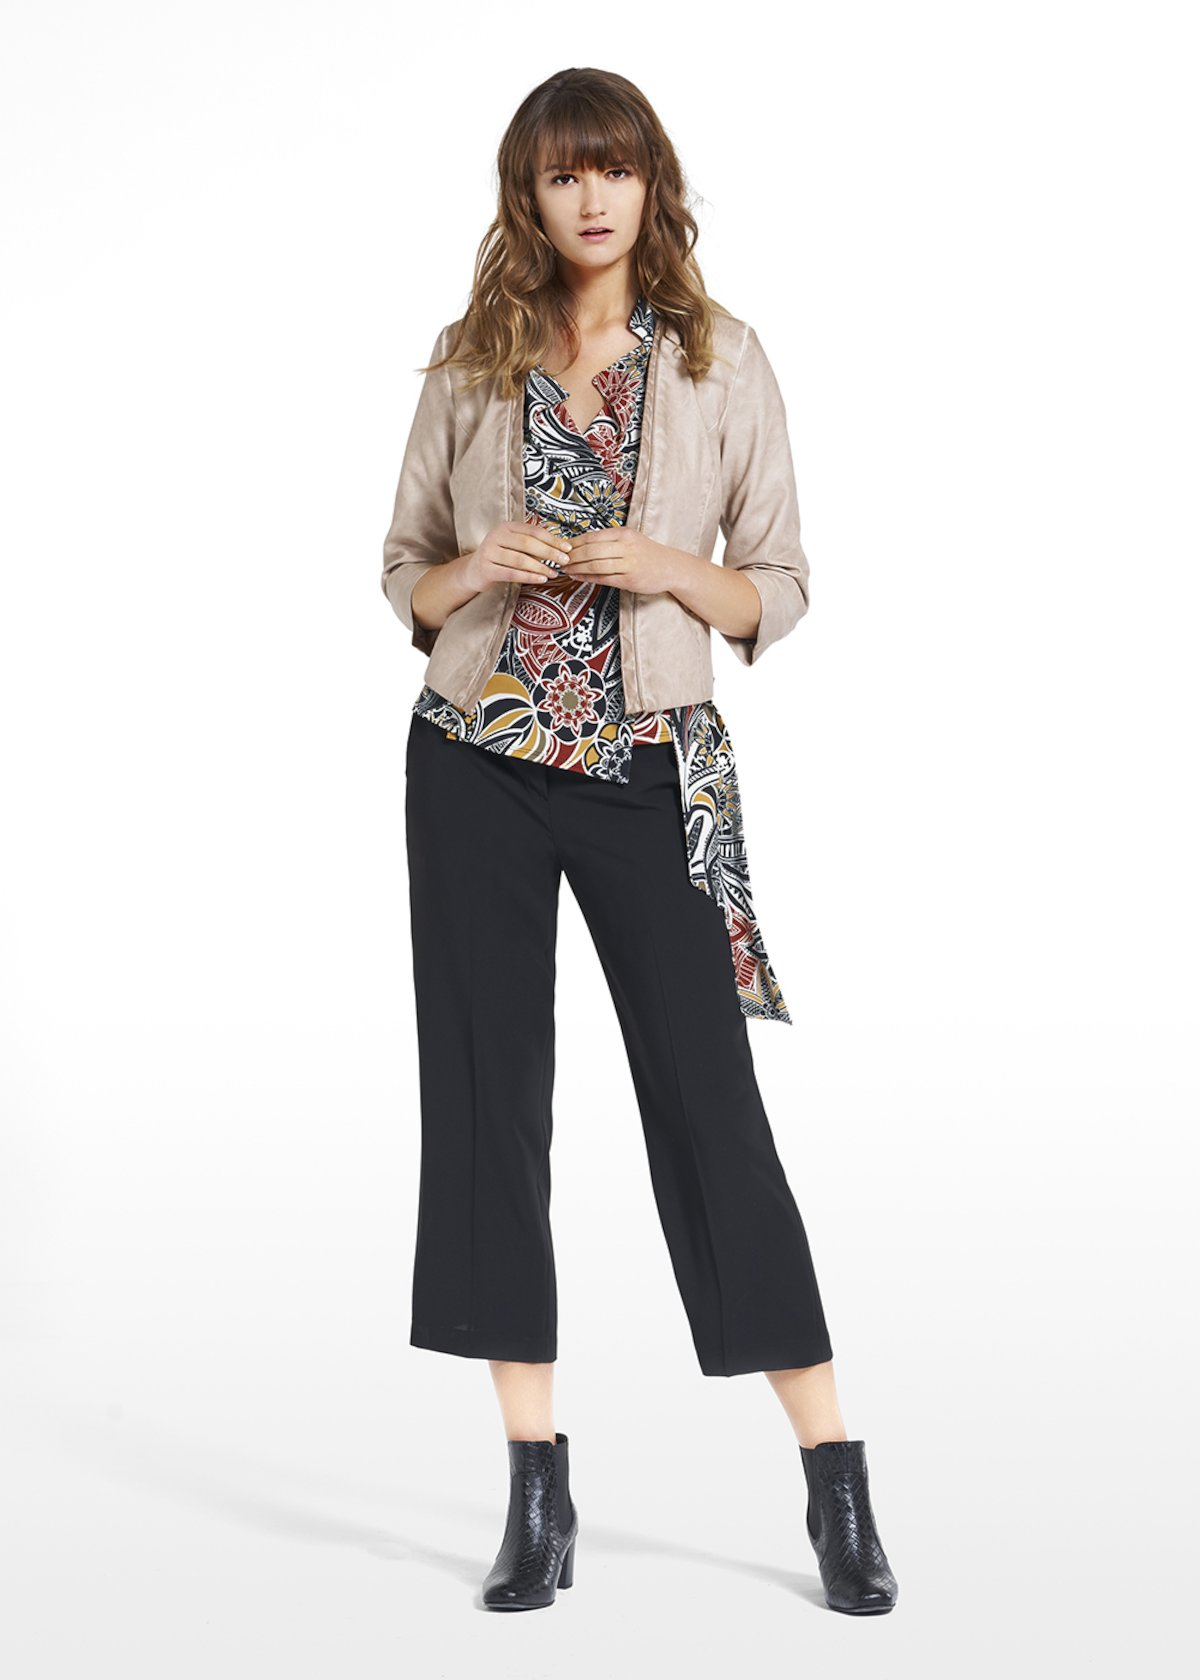 Faux leather shrug Calyd with 3/4 sleeves - Doeskin - Woman